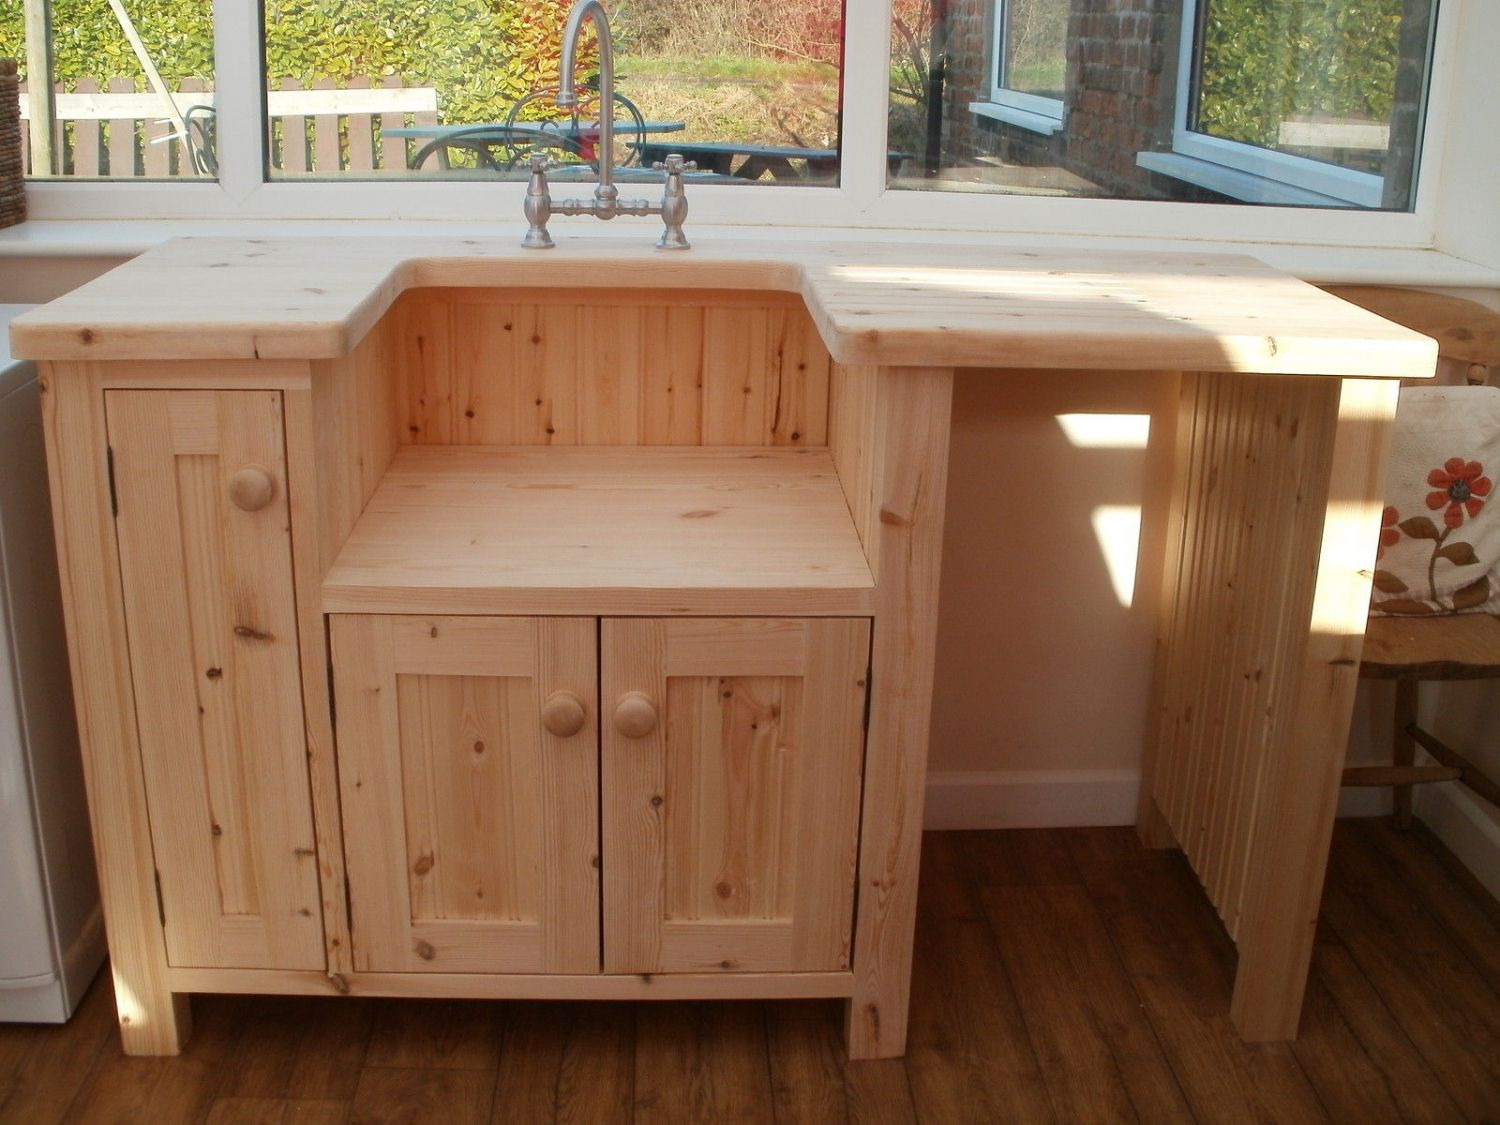 Stand Alone Kitchen Sink Diy Kitchen Countertop Ideas Check More At Http Www Entropiads Com Sta Free Standing Kitchen Sink Kitchen Sink Units Kitchen Stand